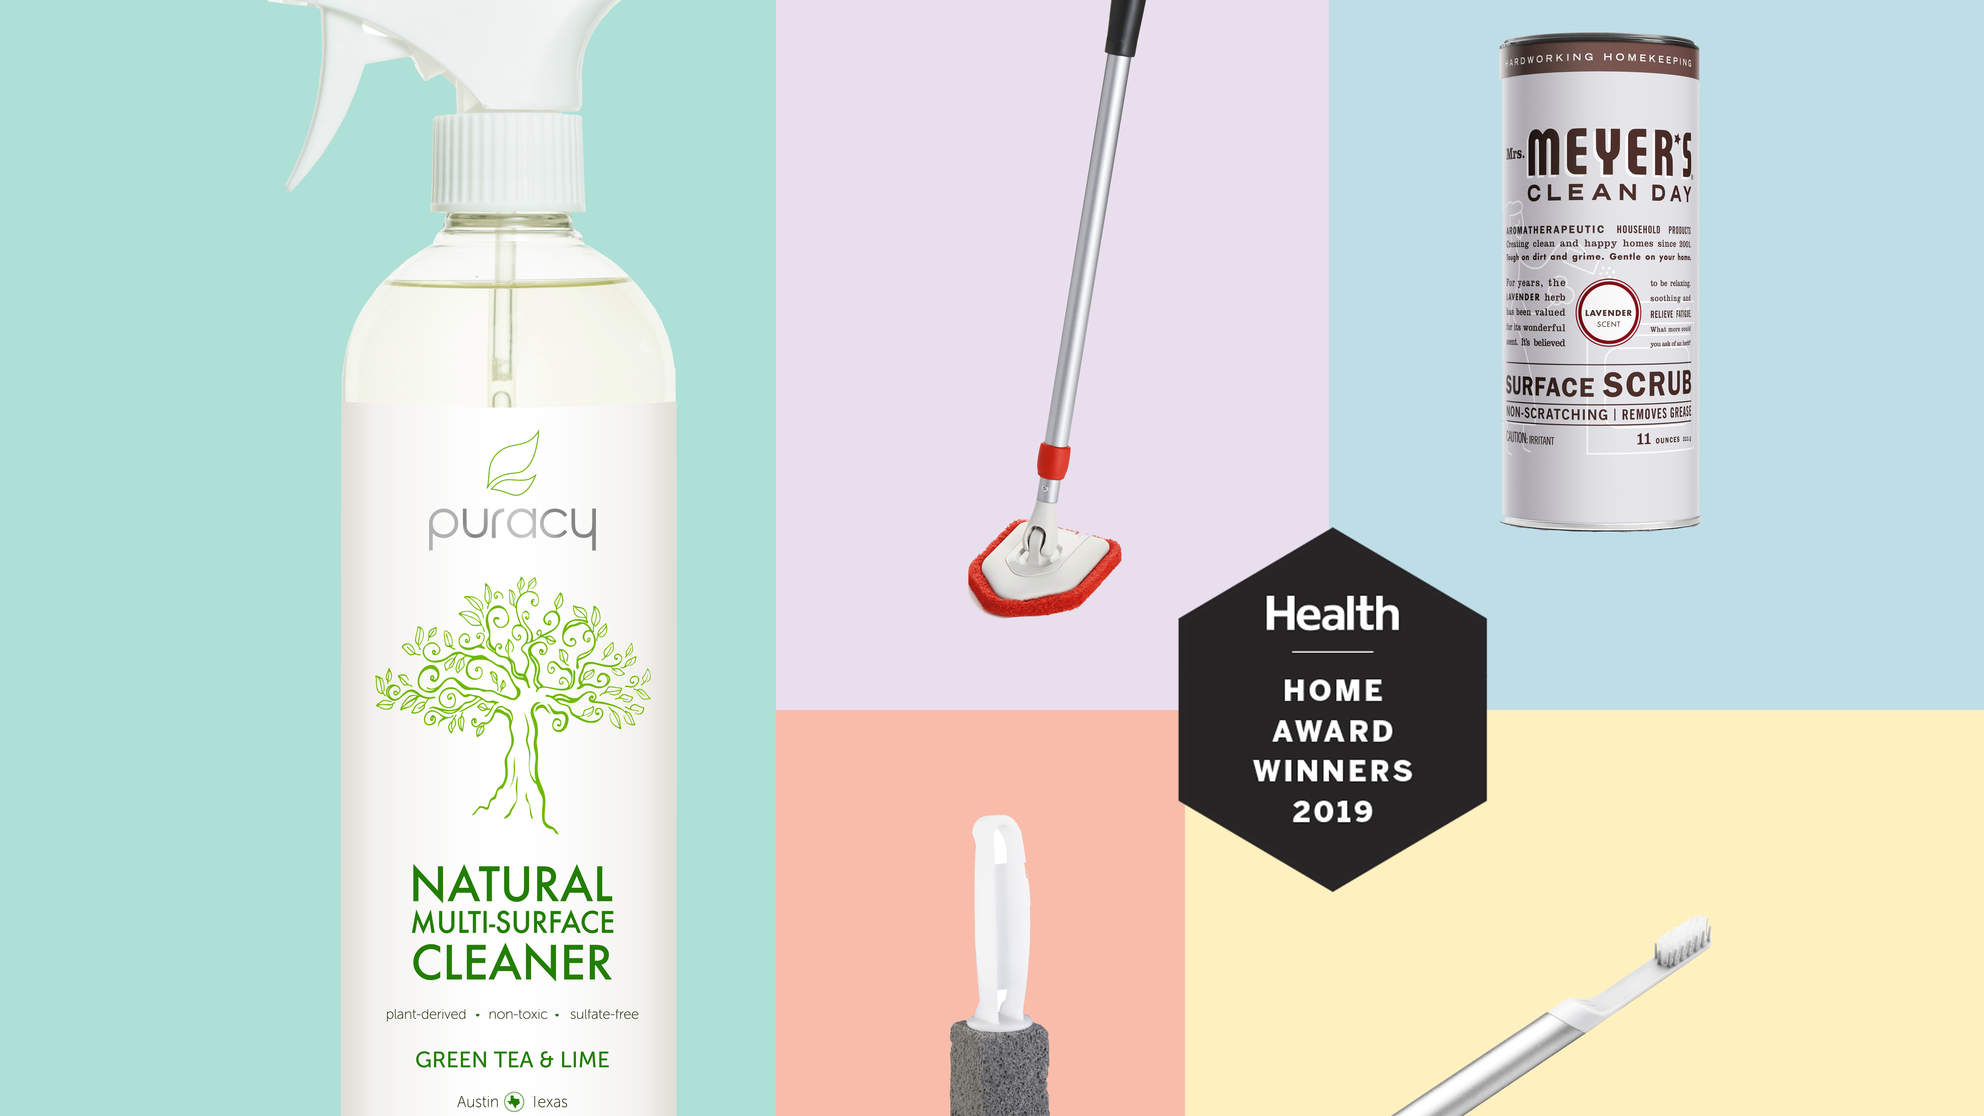 The Best Healthy Home Products of 2019 - Health